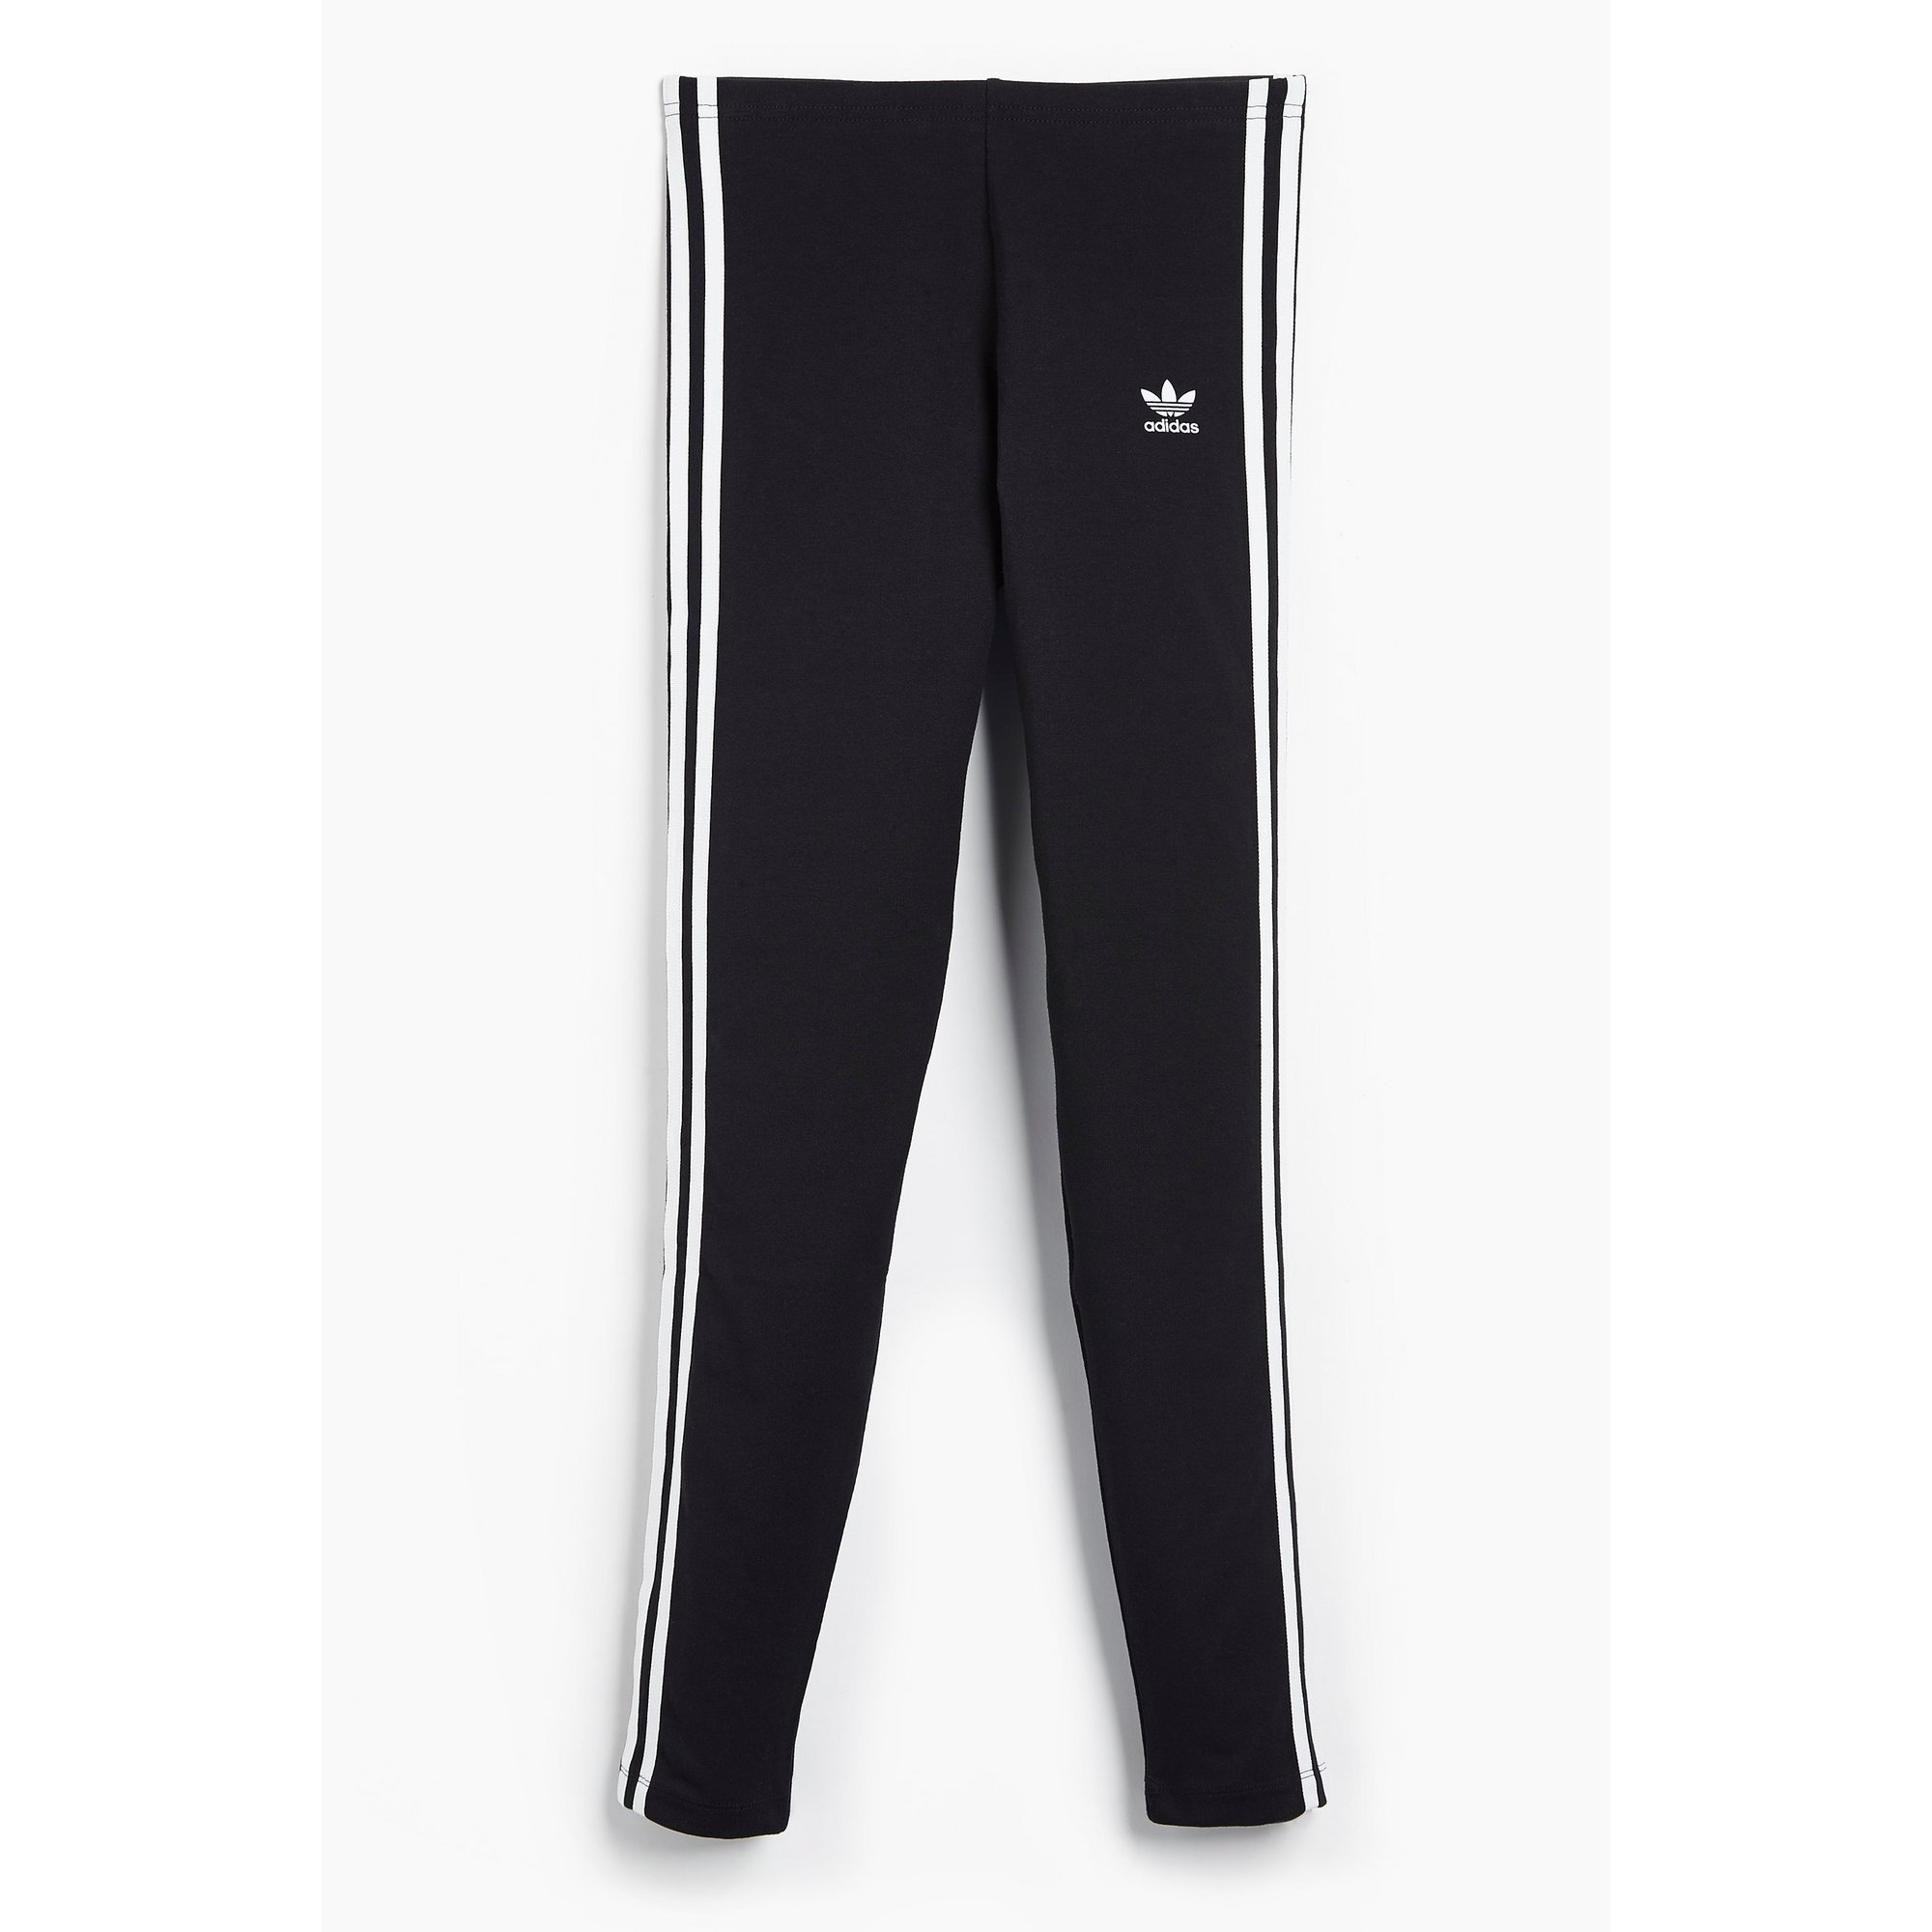 Image of Girls adidas 3-Stripes Black Leggings